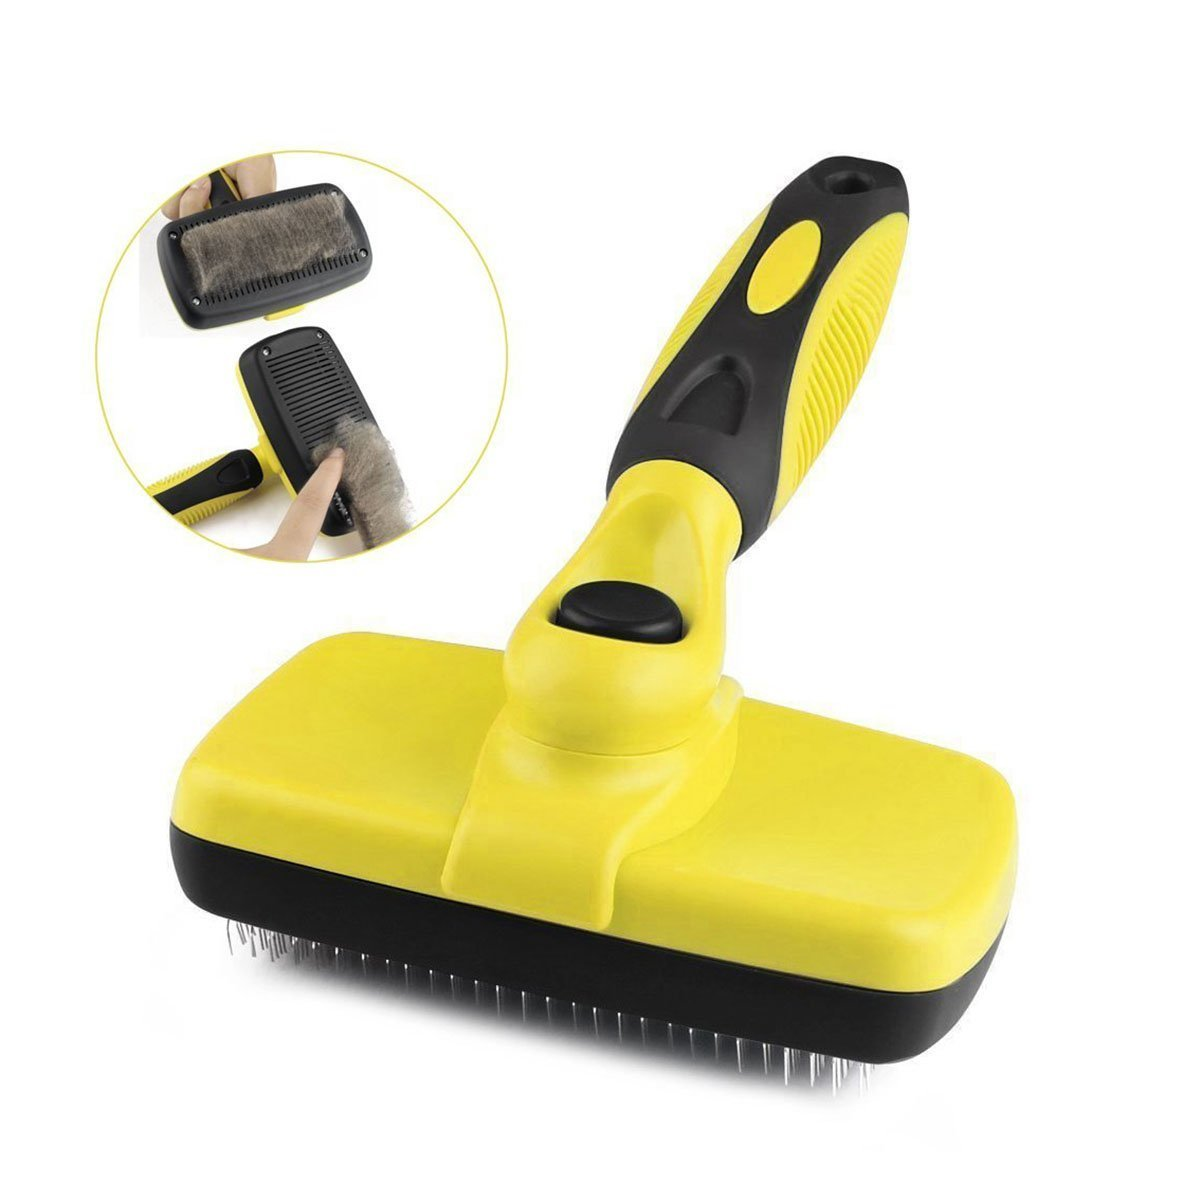 Goldsen Pet Deshedding Brush,Self Cleaning Brush with Flea Comb Pet Brush for Grooming Remove Tangled Knots and Loose Hair for Small Medium Large Dog Cat (Brush)